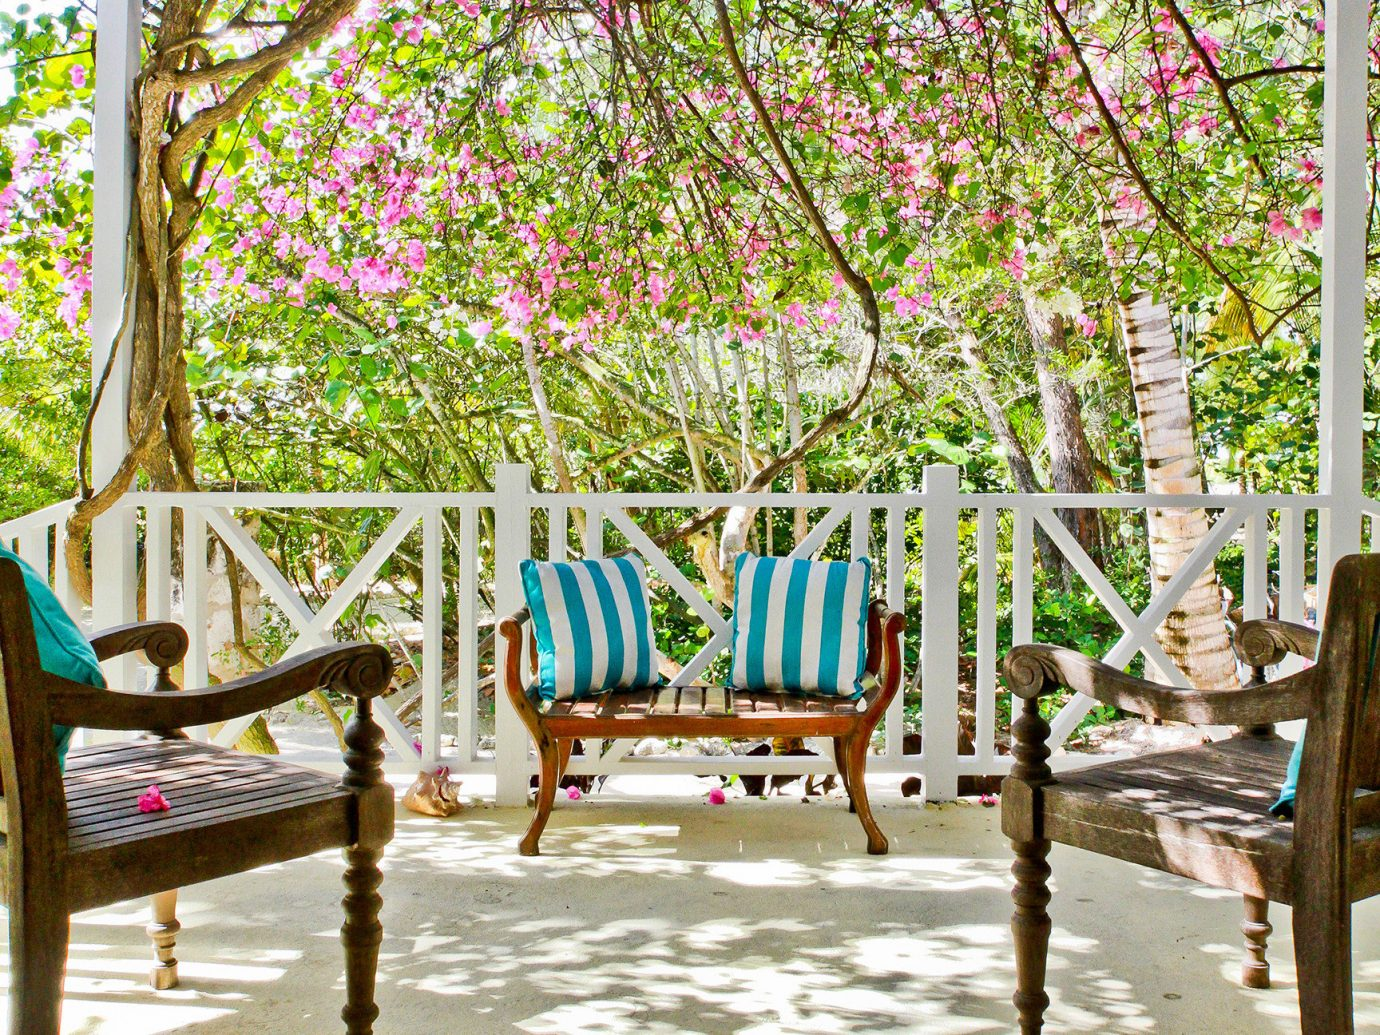 Hotels tree chair botany seat flower furniture